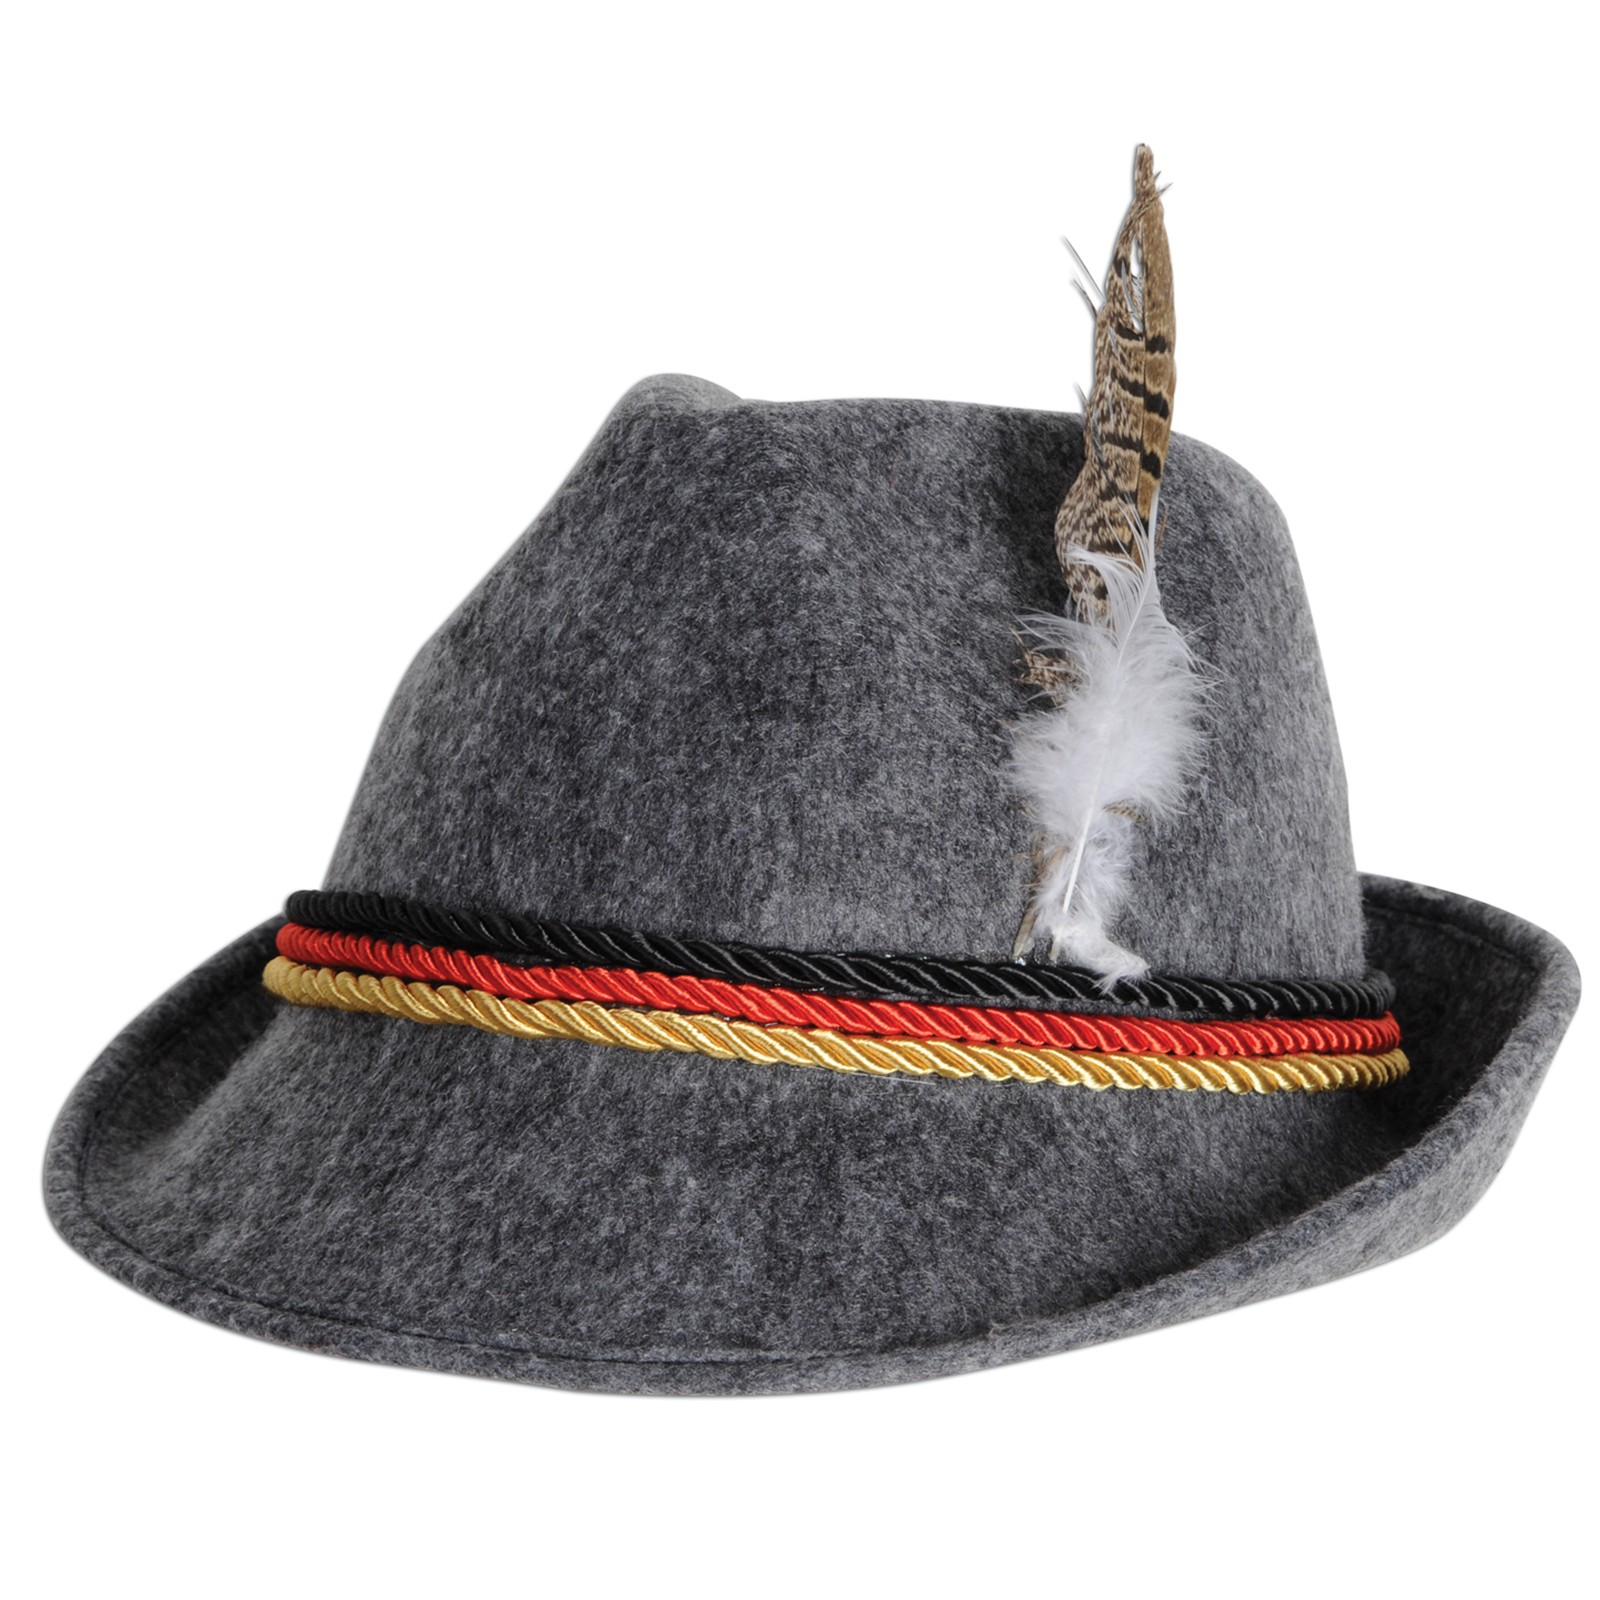 German hat clipart.